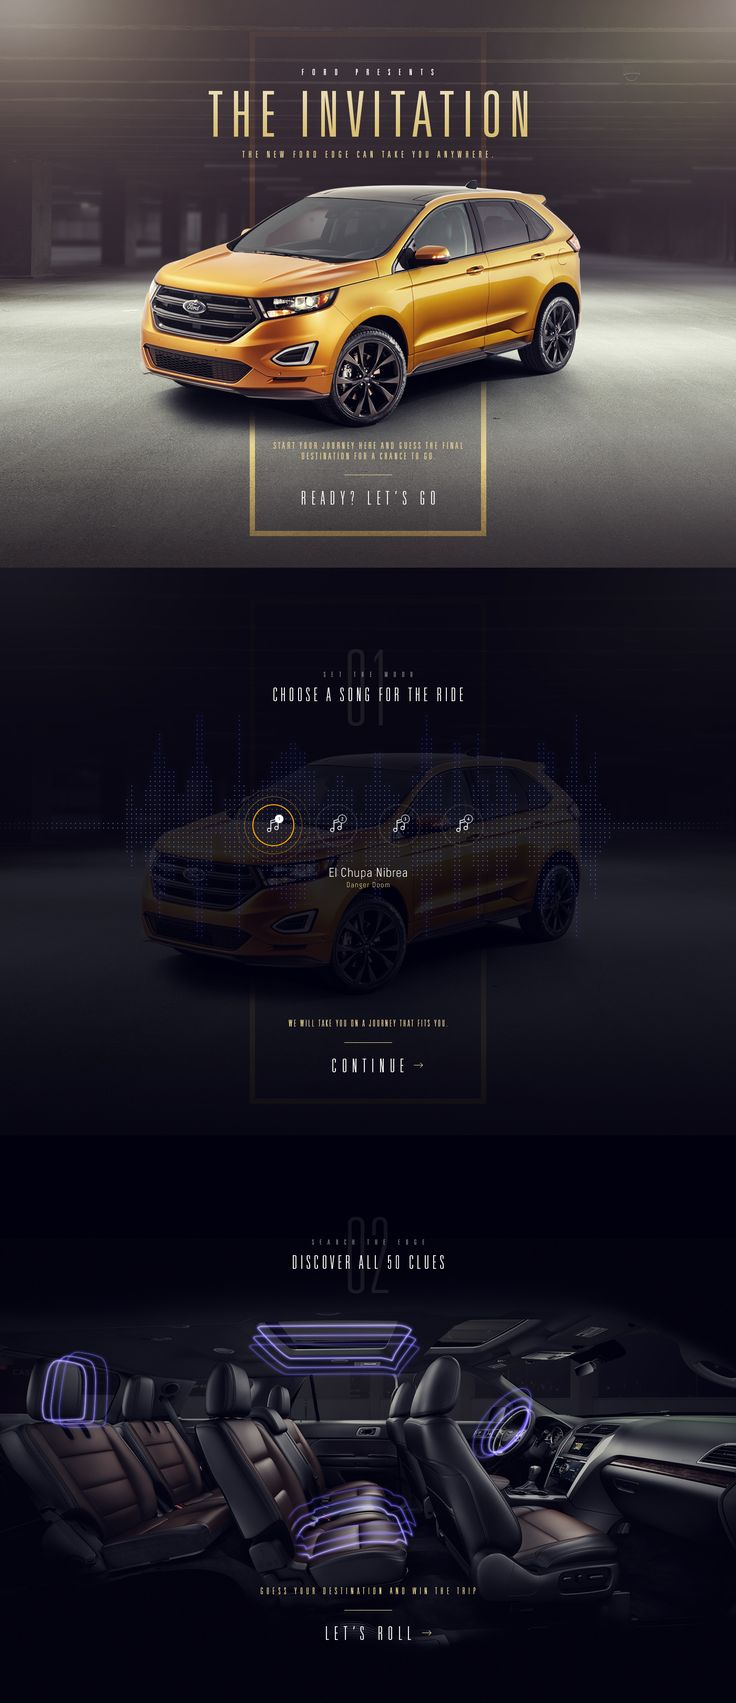 North Kingdom asked me to help on a pitch for the new Ford Edge. It was to be a game where users would collect clues hidden in the interior of the Edge as they traveled to a destination. If the users could guess the destination they would win a trip there…